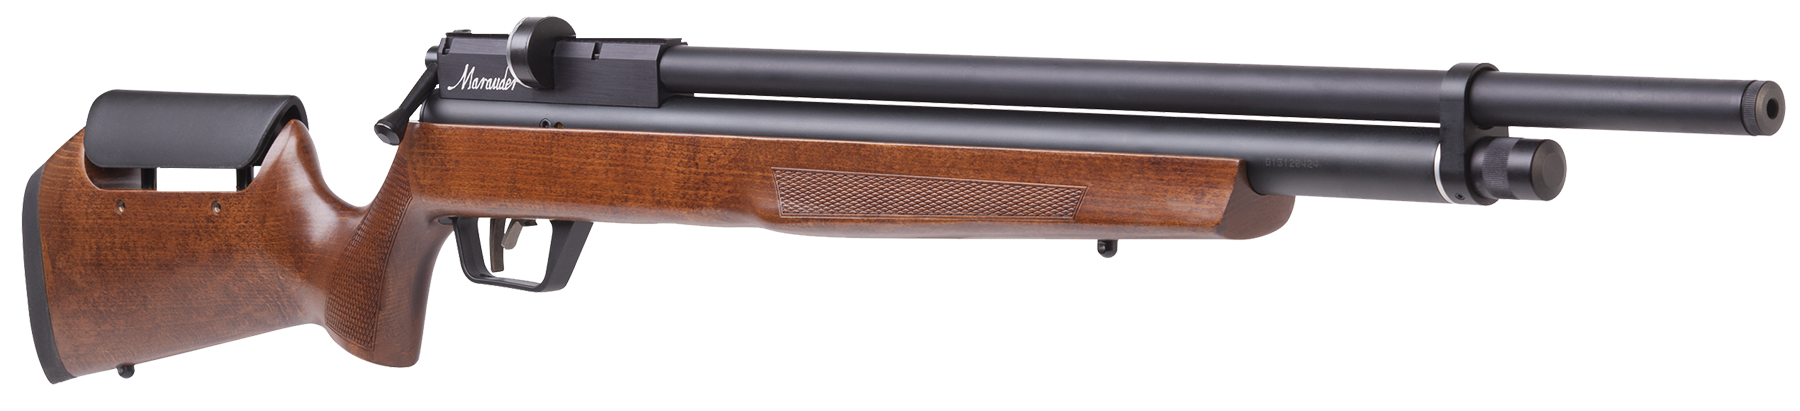 Benjamin BP2564W Marauder Air Rifle Bolt .25 Pellet Hardwood Stock